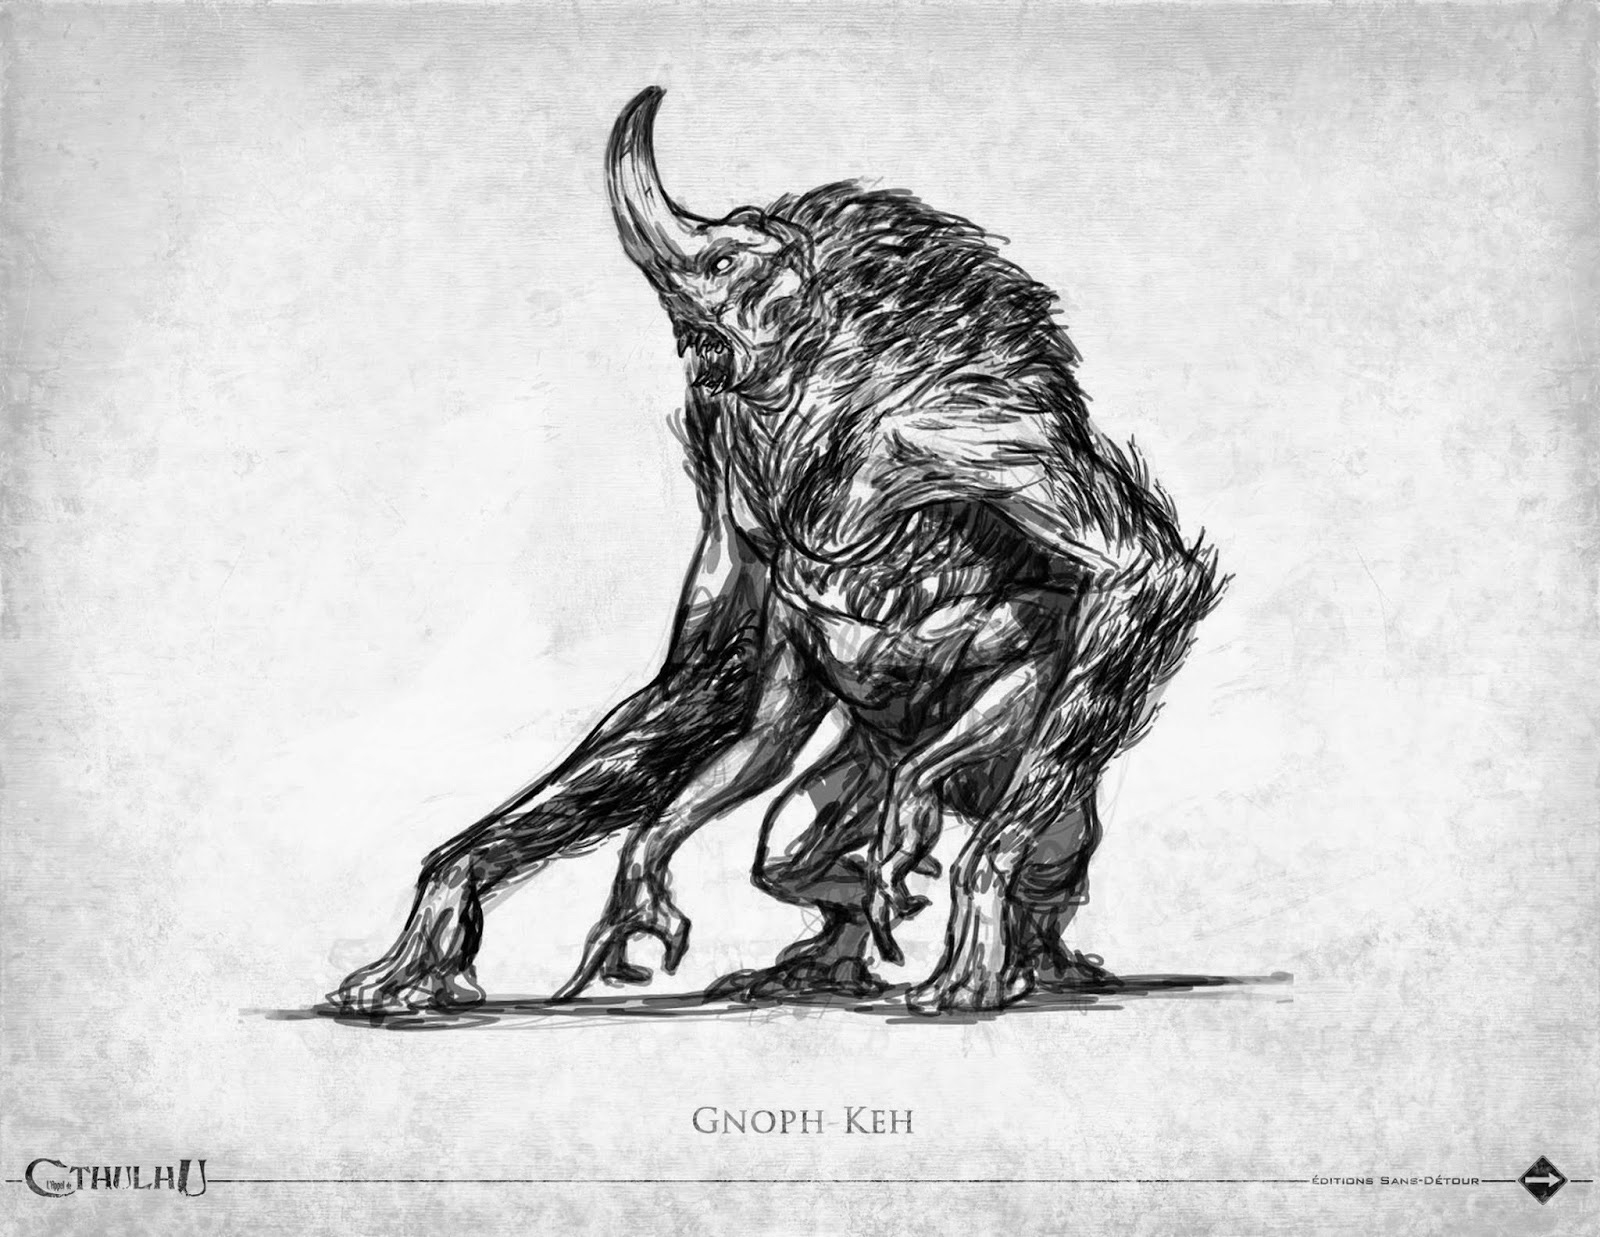 gnophkeh monster wiki fandom powered by wikia